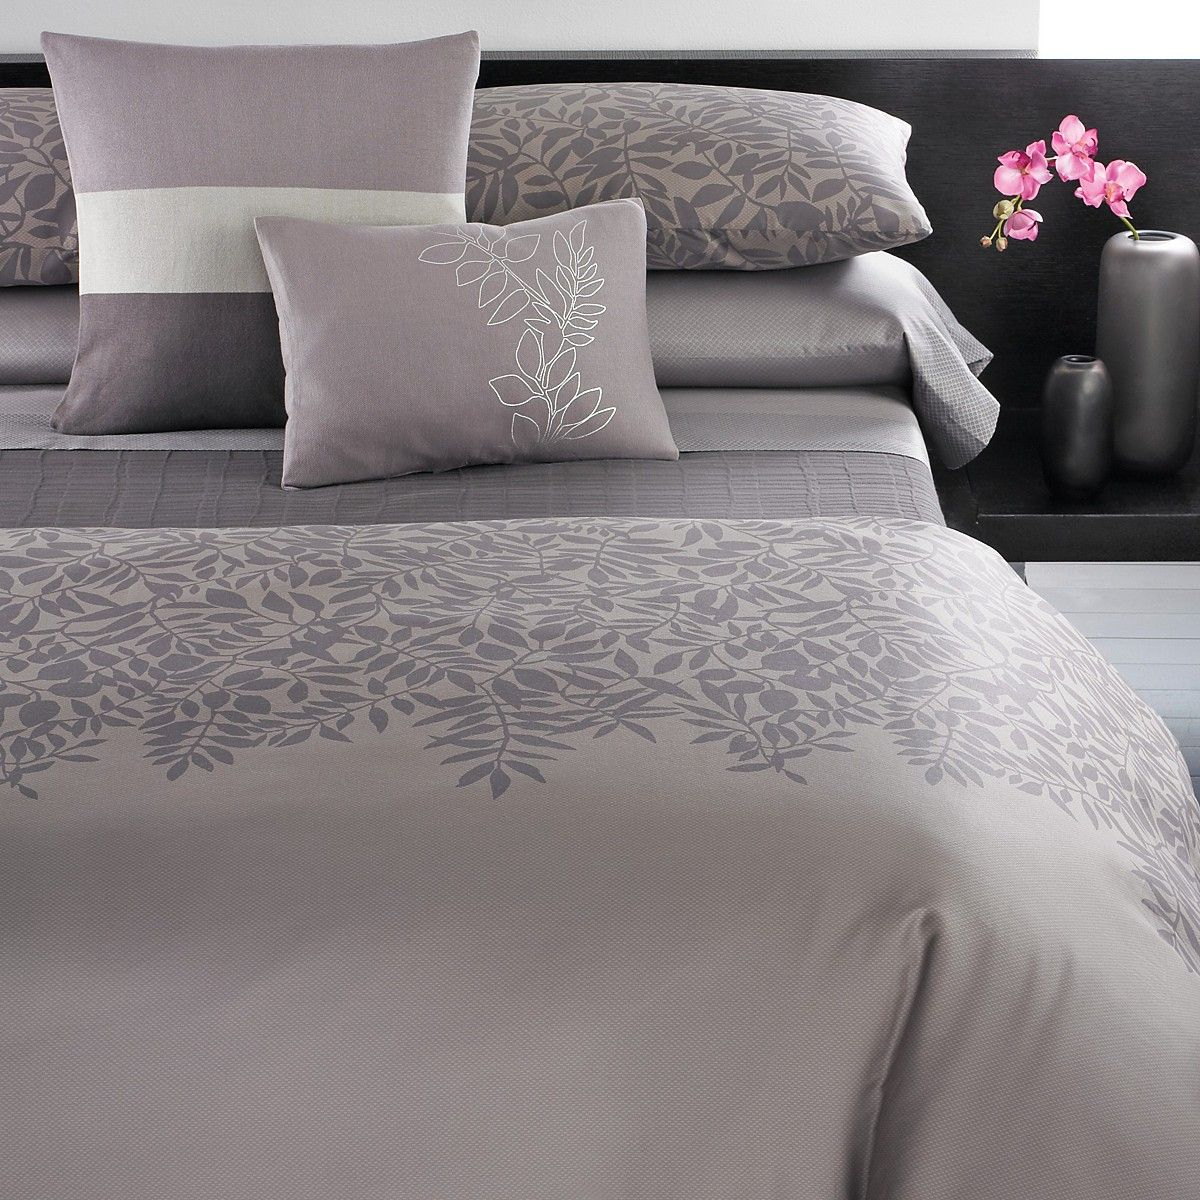 calvin pin klein s comforters collection college bound comforter bloomingdale montauk